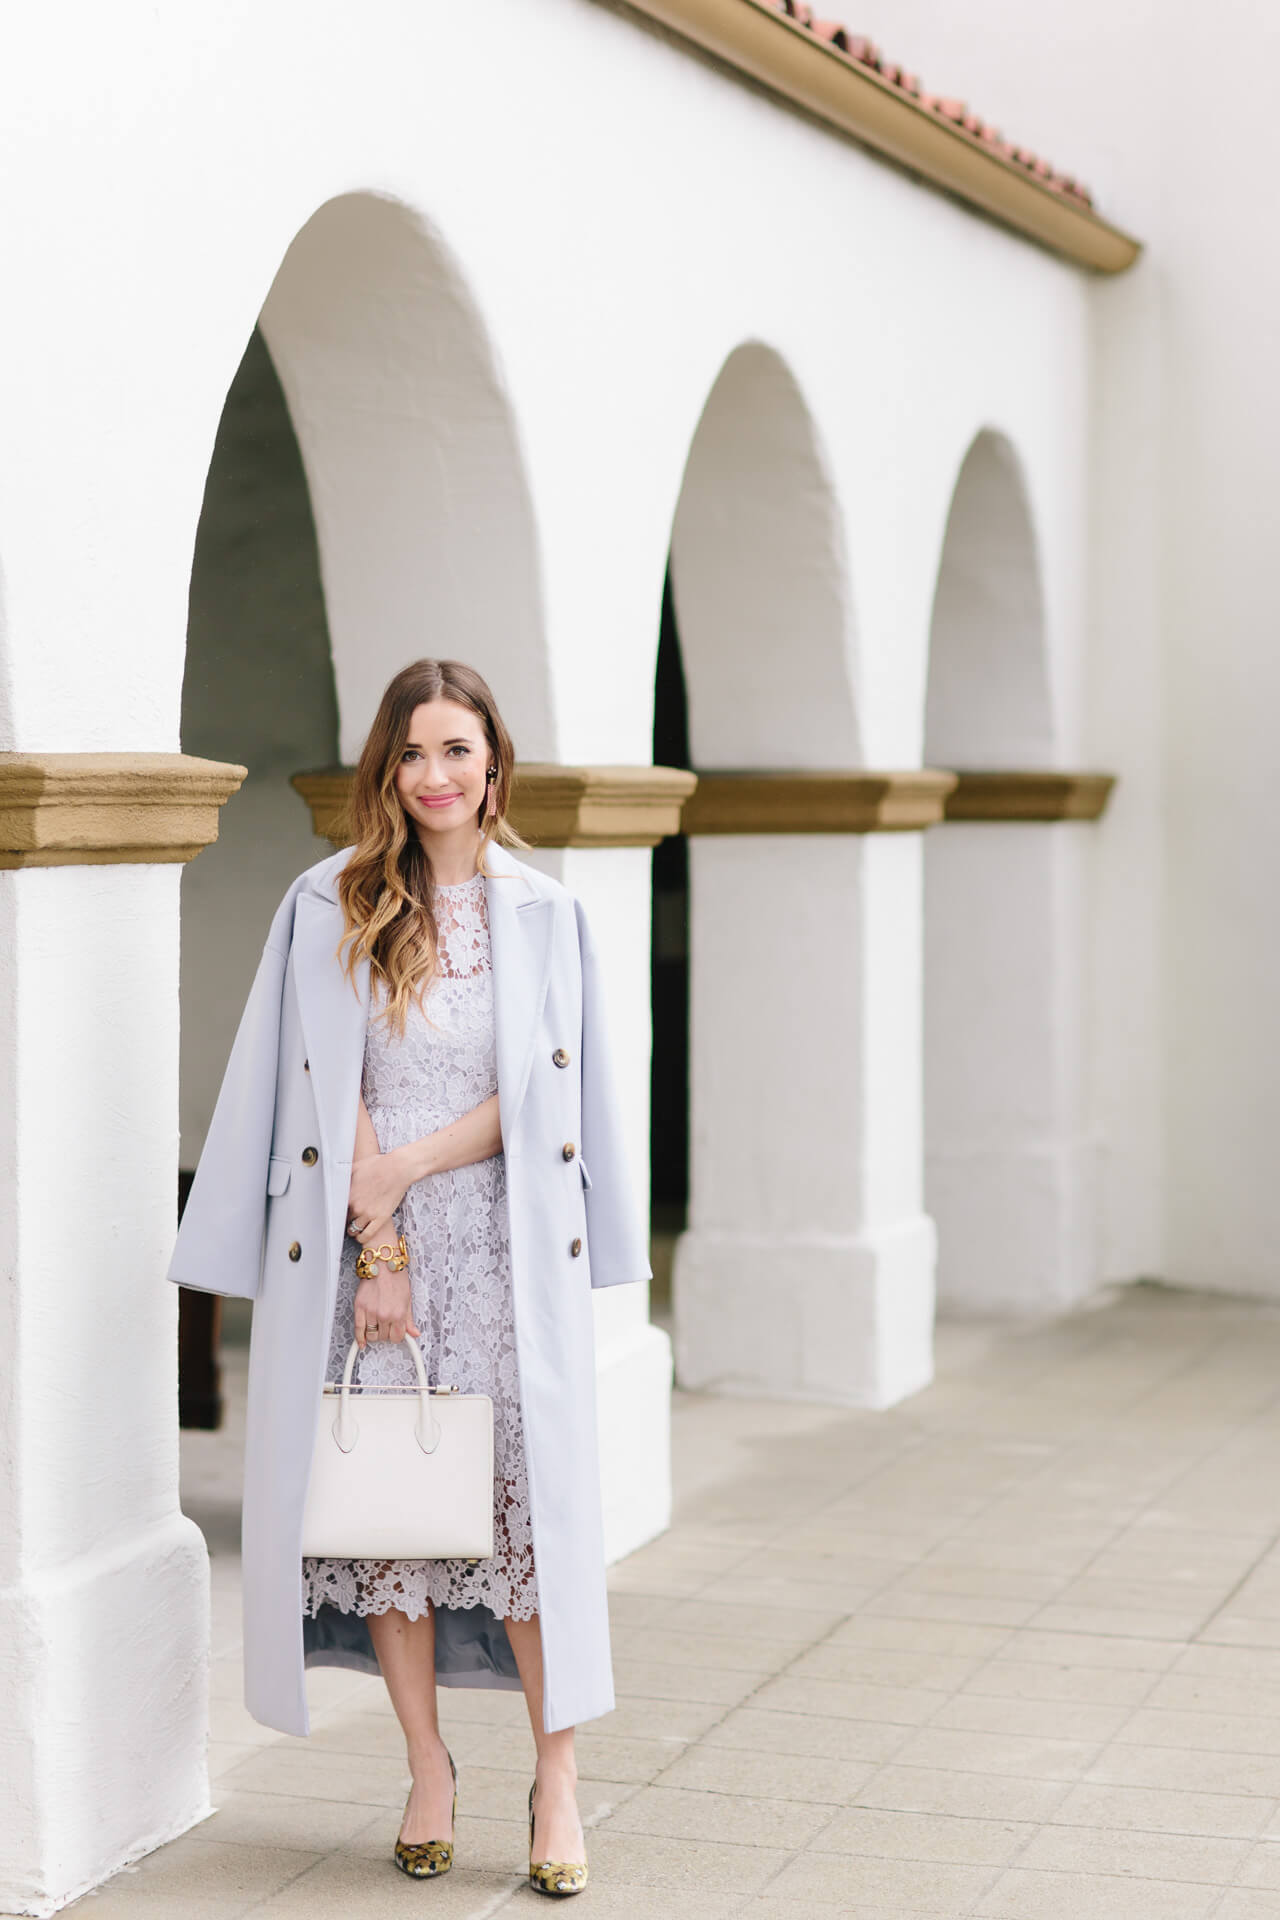 feminine early spring outfit with lavender coat and lace dress